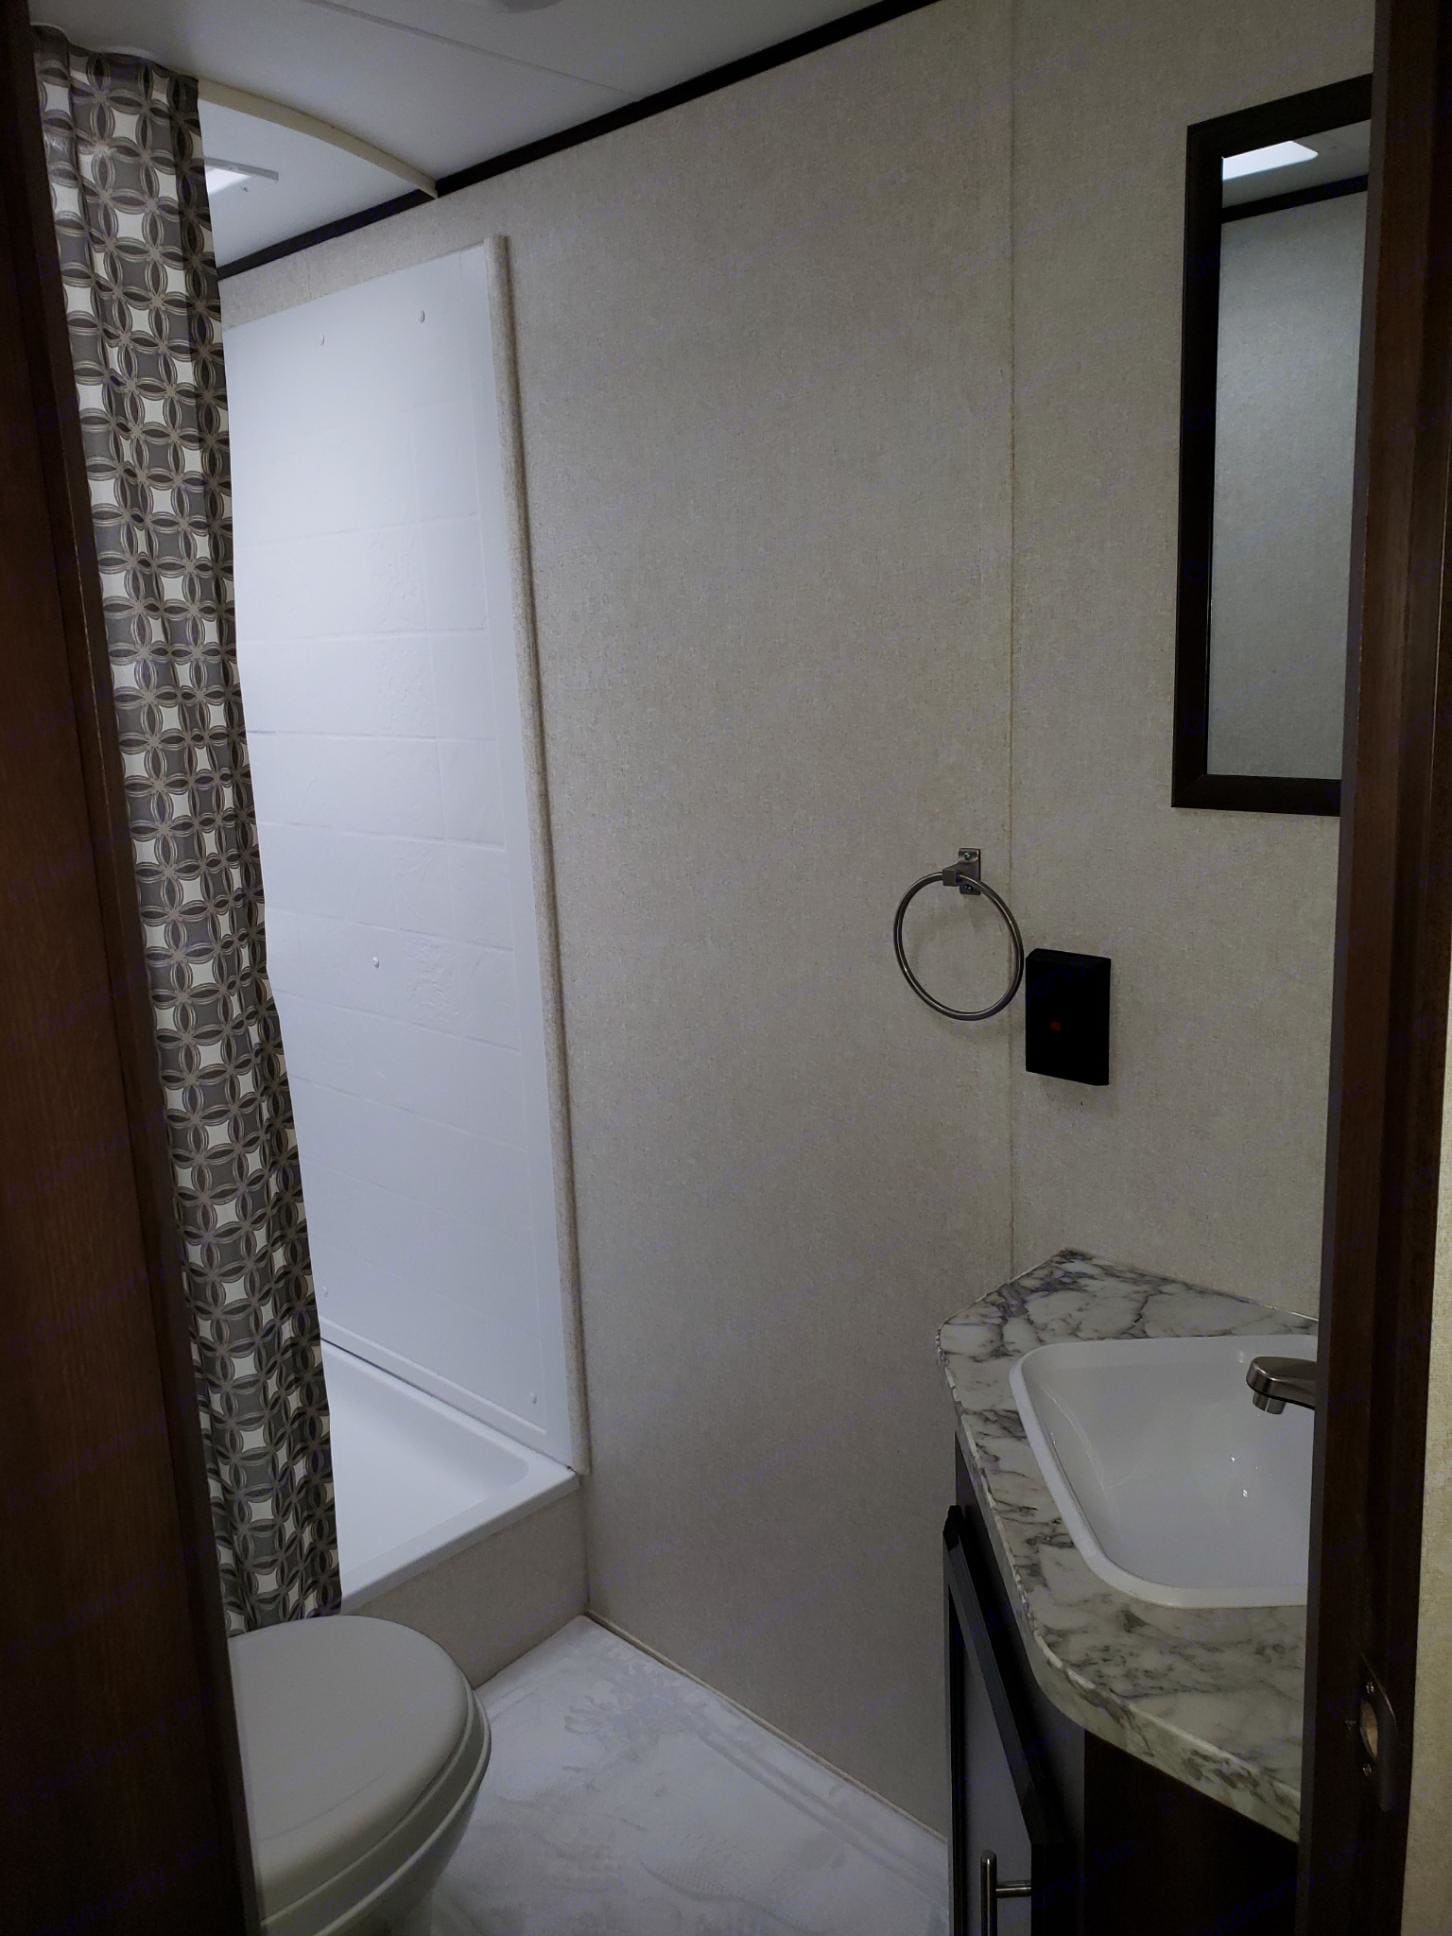 extra roomy shower, one of the biggest ones we've seen in an RV!. Jayco Flight 284BHS SLX 2019